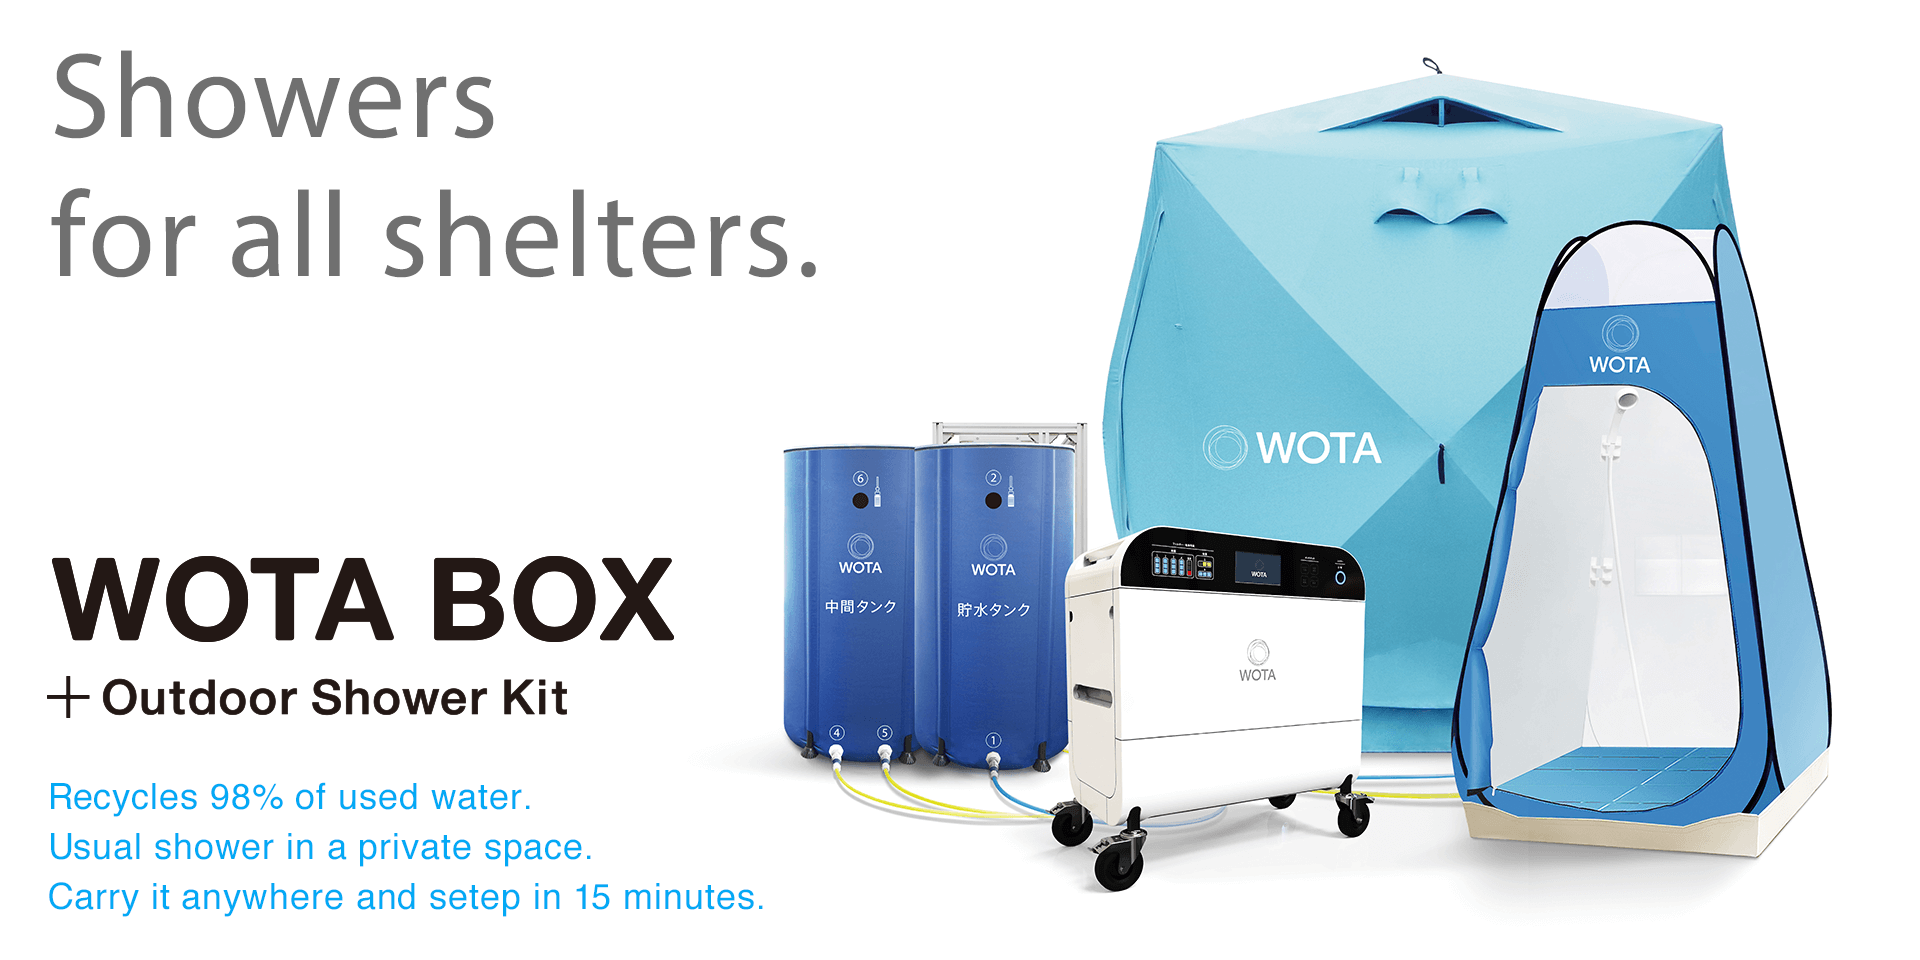 Showers for all shelters. WOTA BOX + Outdoor Shower Kit